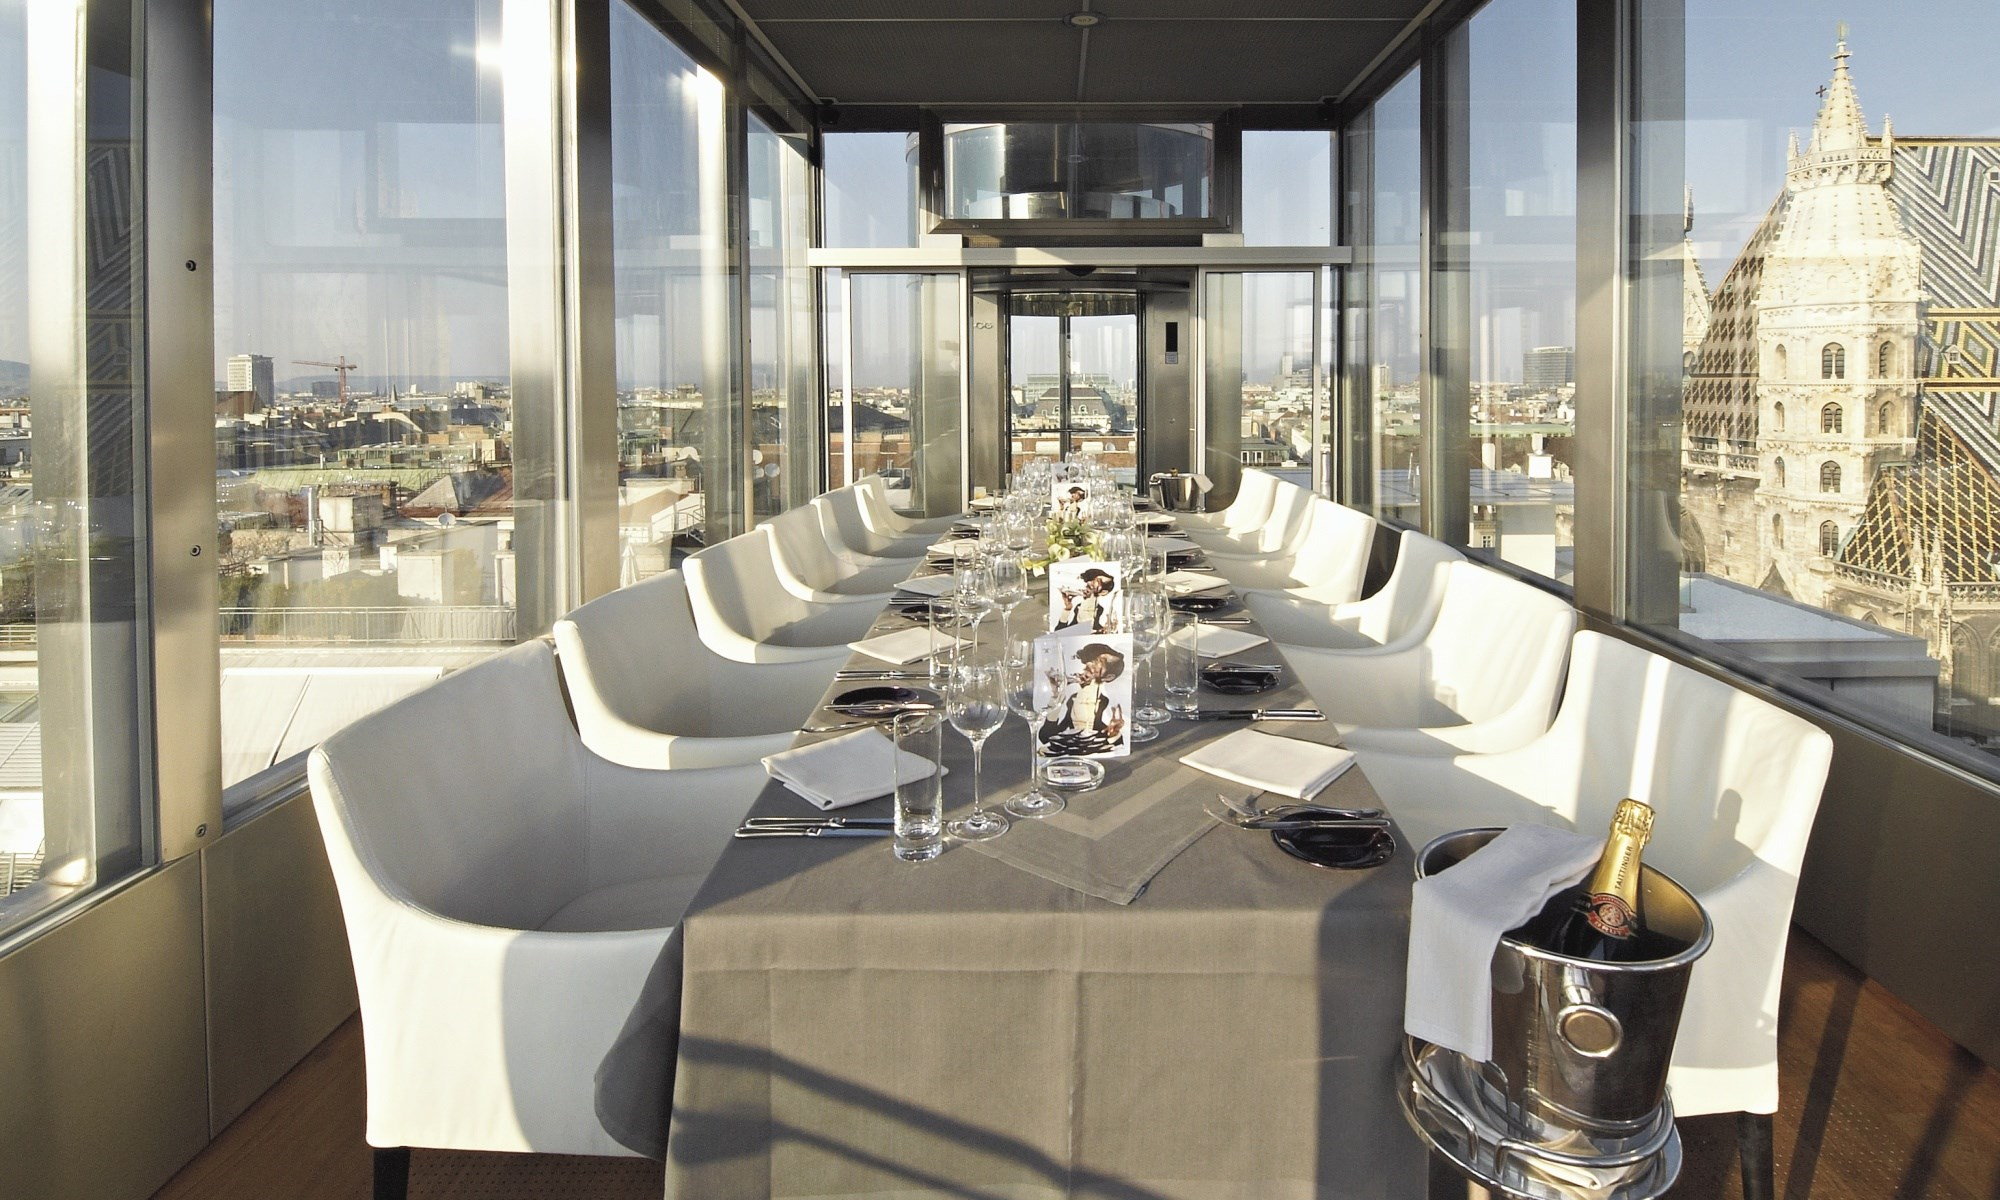 Do Amp Co Hotel Vienna Events